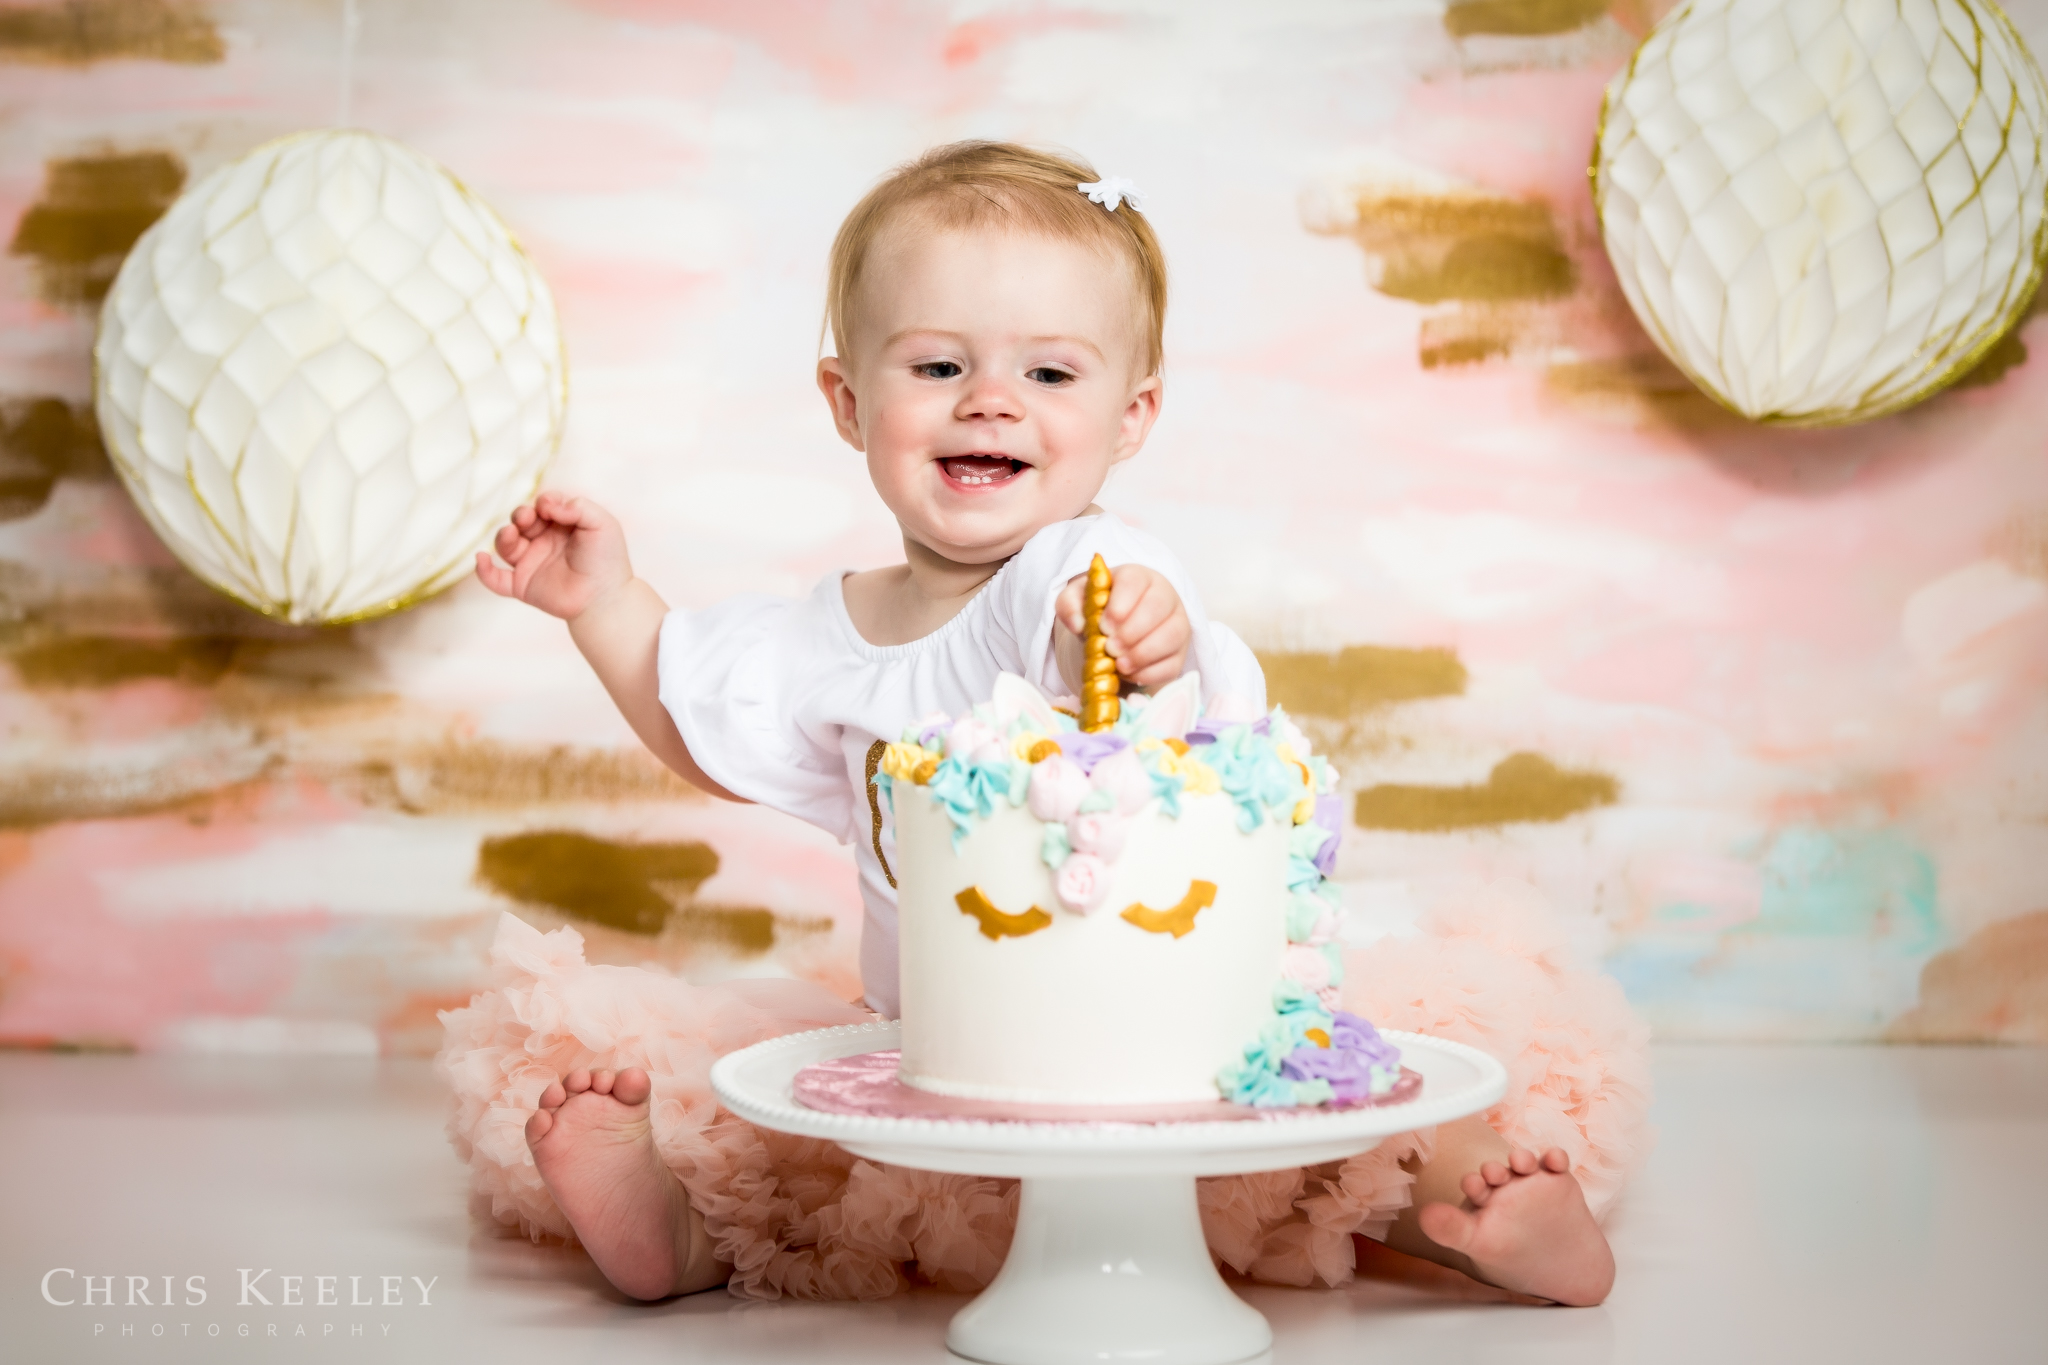 gwendolyn-one-year-cake-smash-dover-new-hampshire-photographer-02.jpg